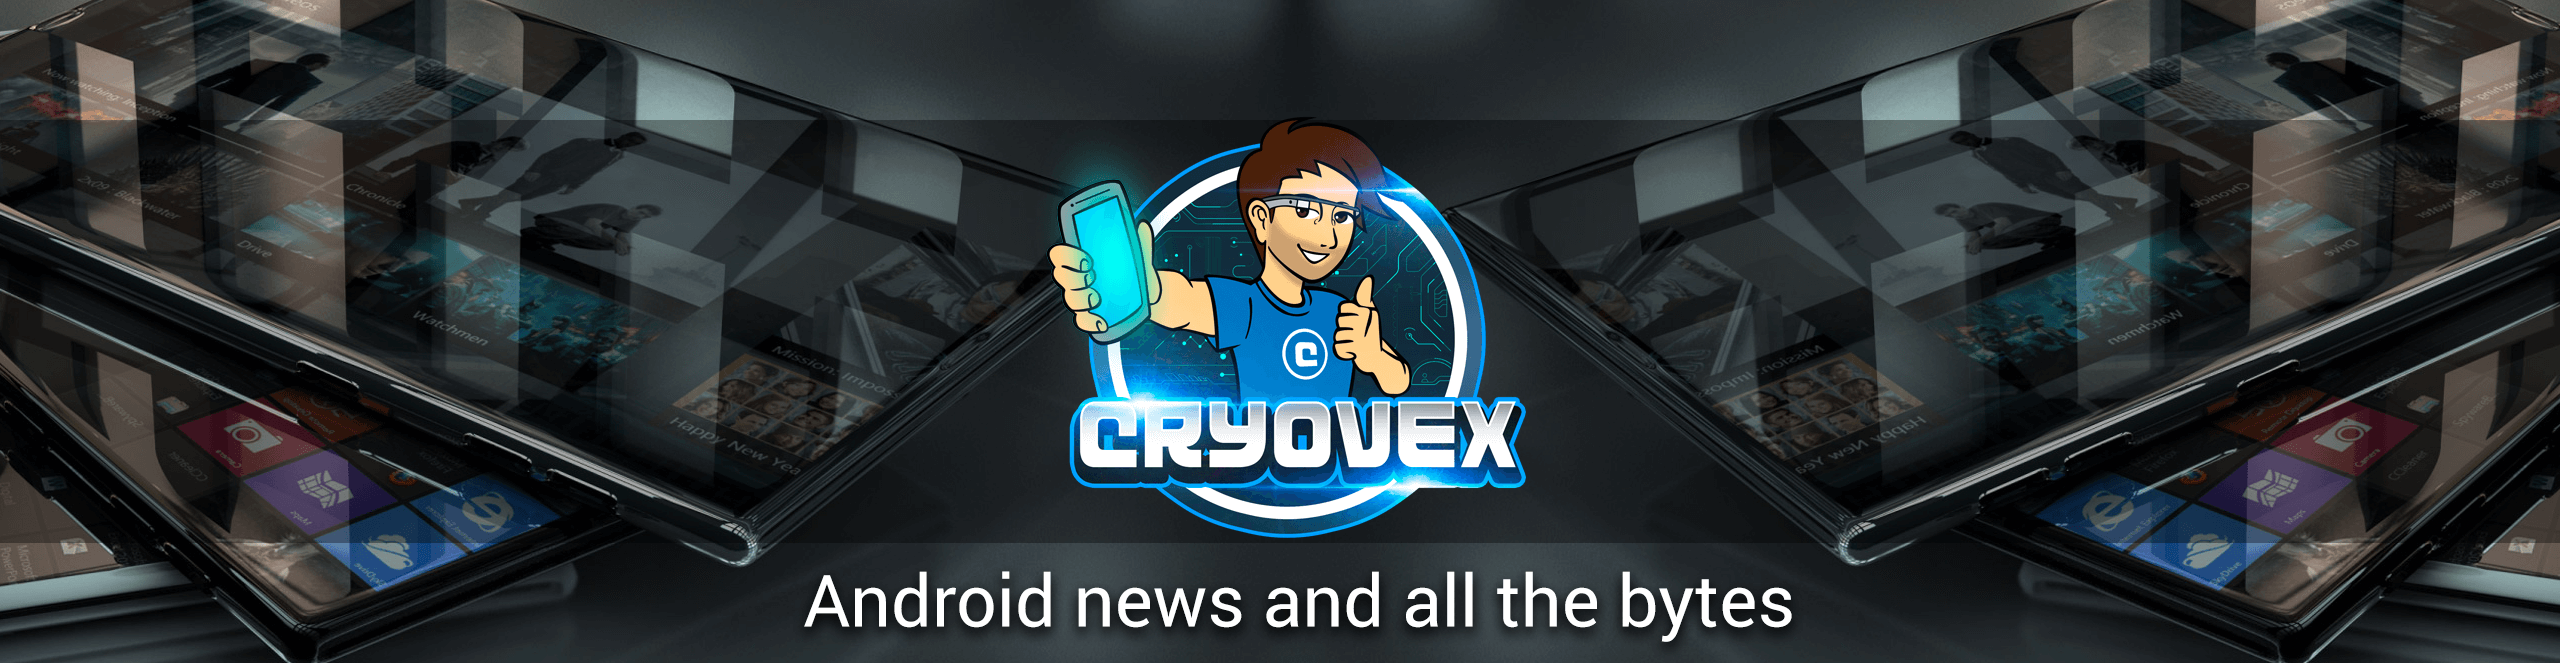 Android news and all the bytes